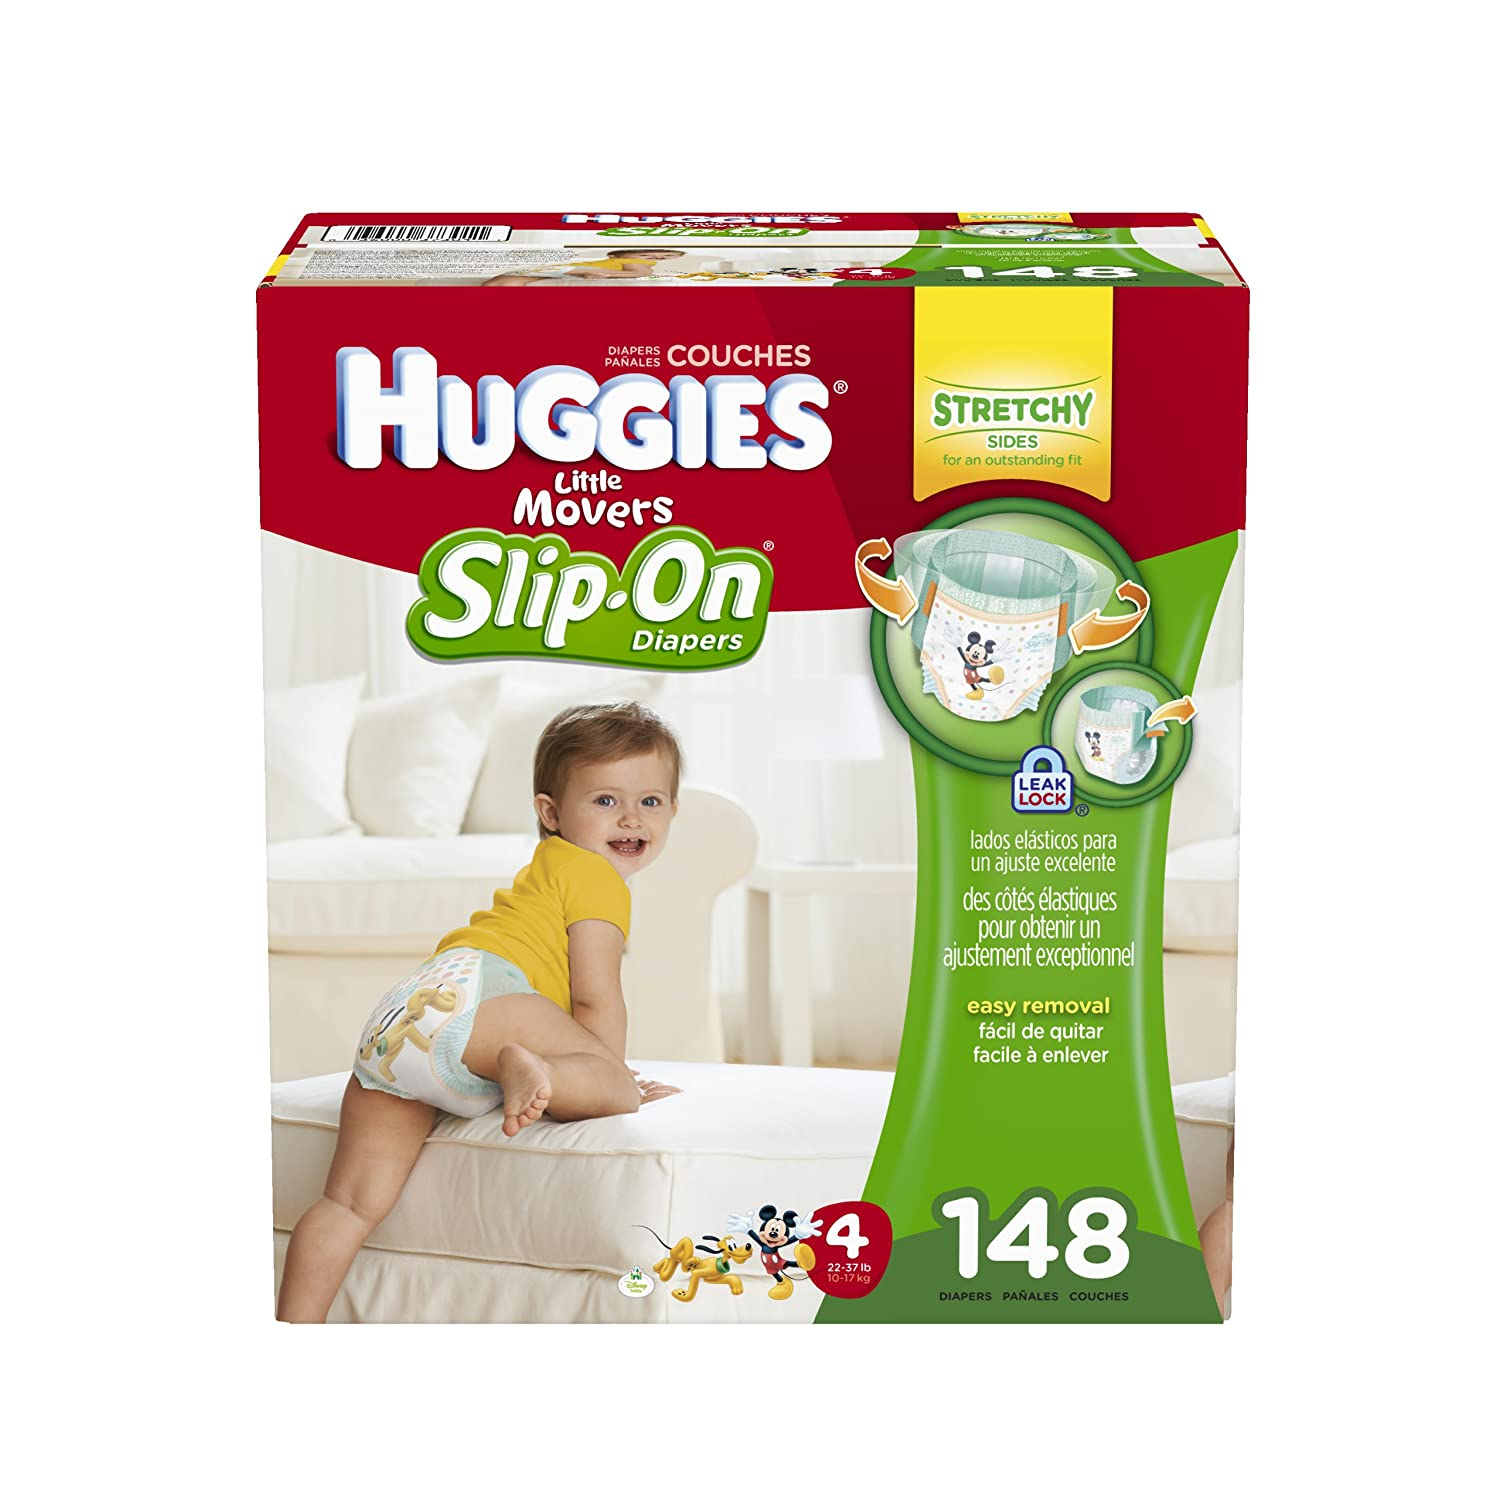 Huggies Little Movers Slip-On Diaper Pants, Size 4, 148 Count ...